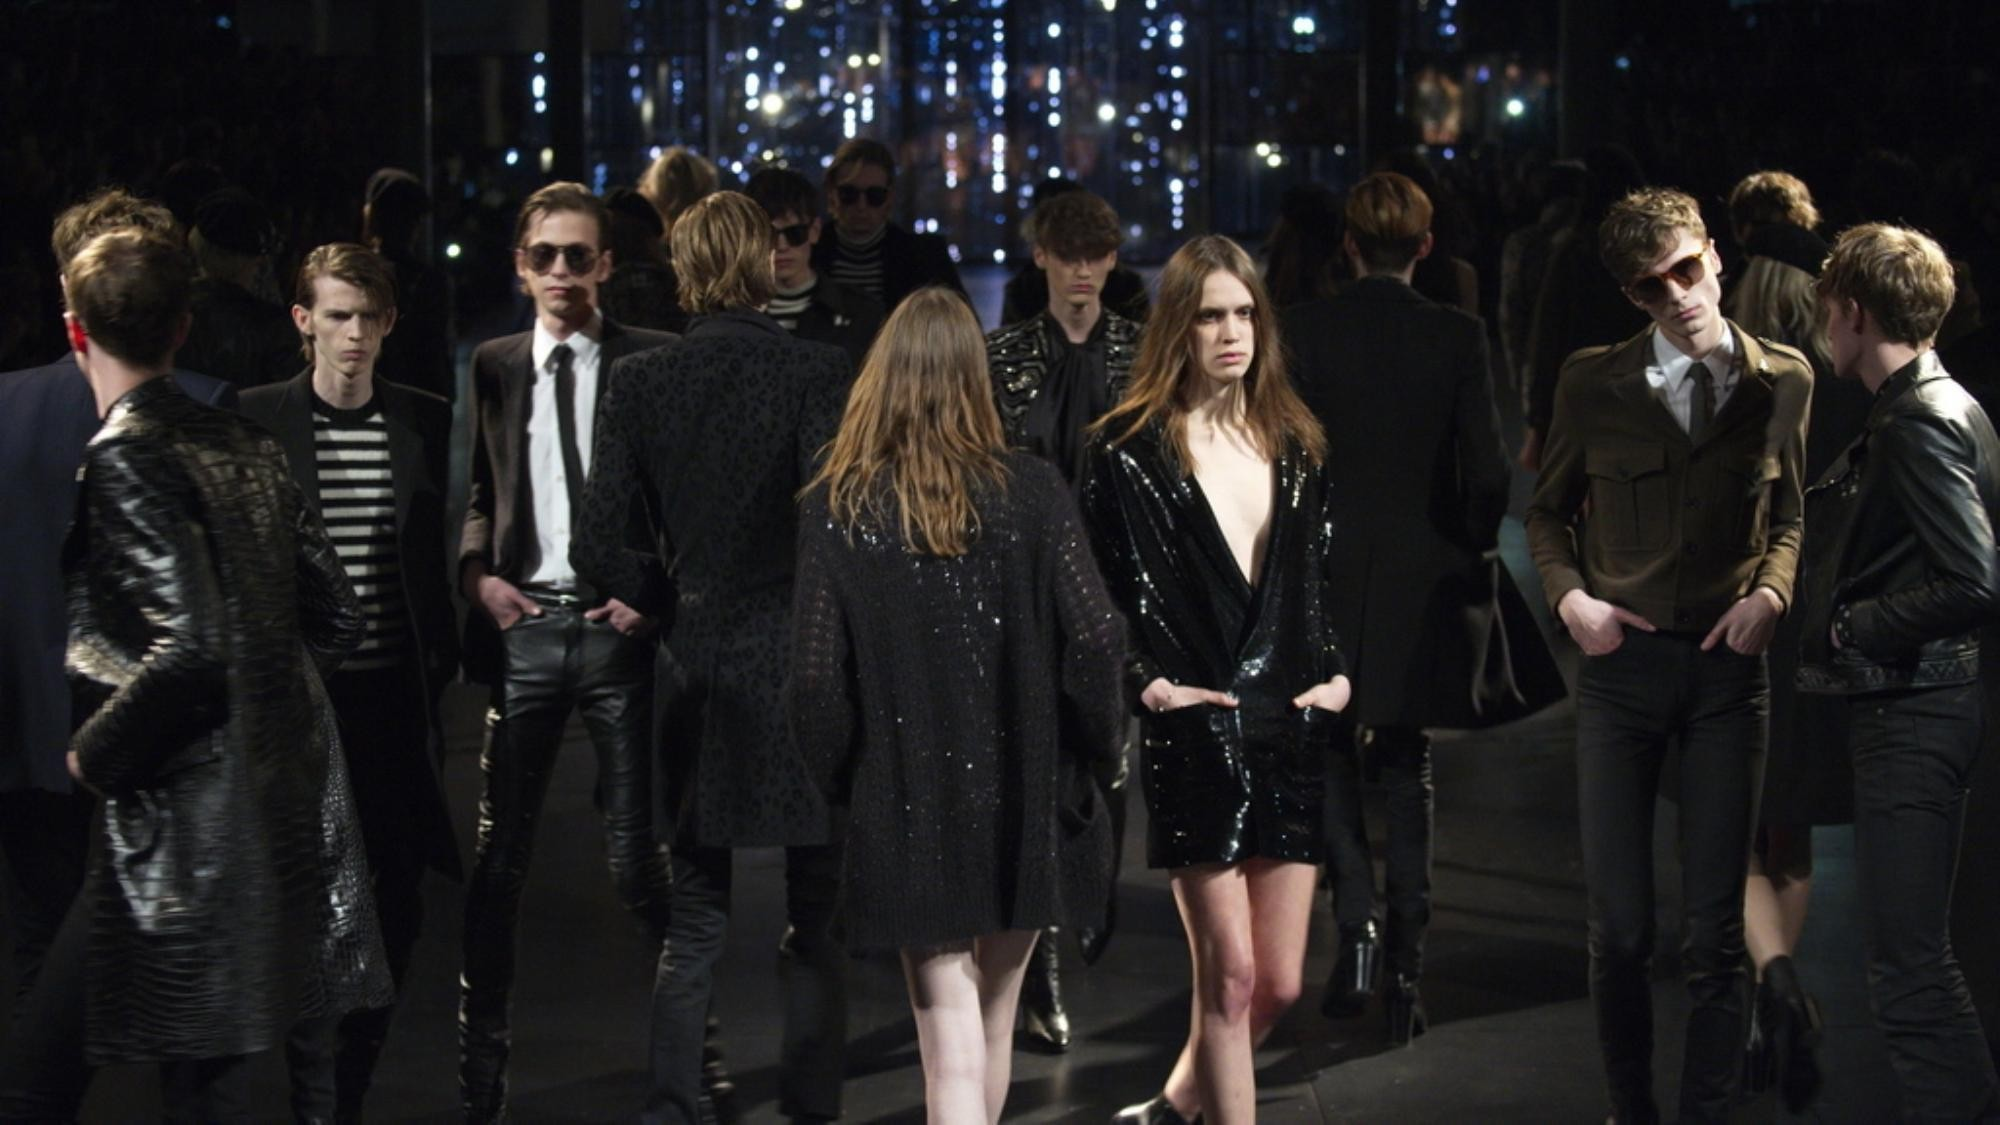 hedi slimane earns a small victory after suing ysl's parent company — again